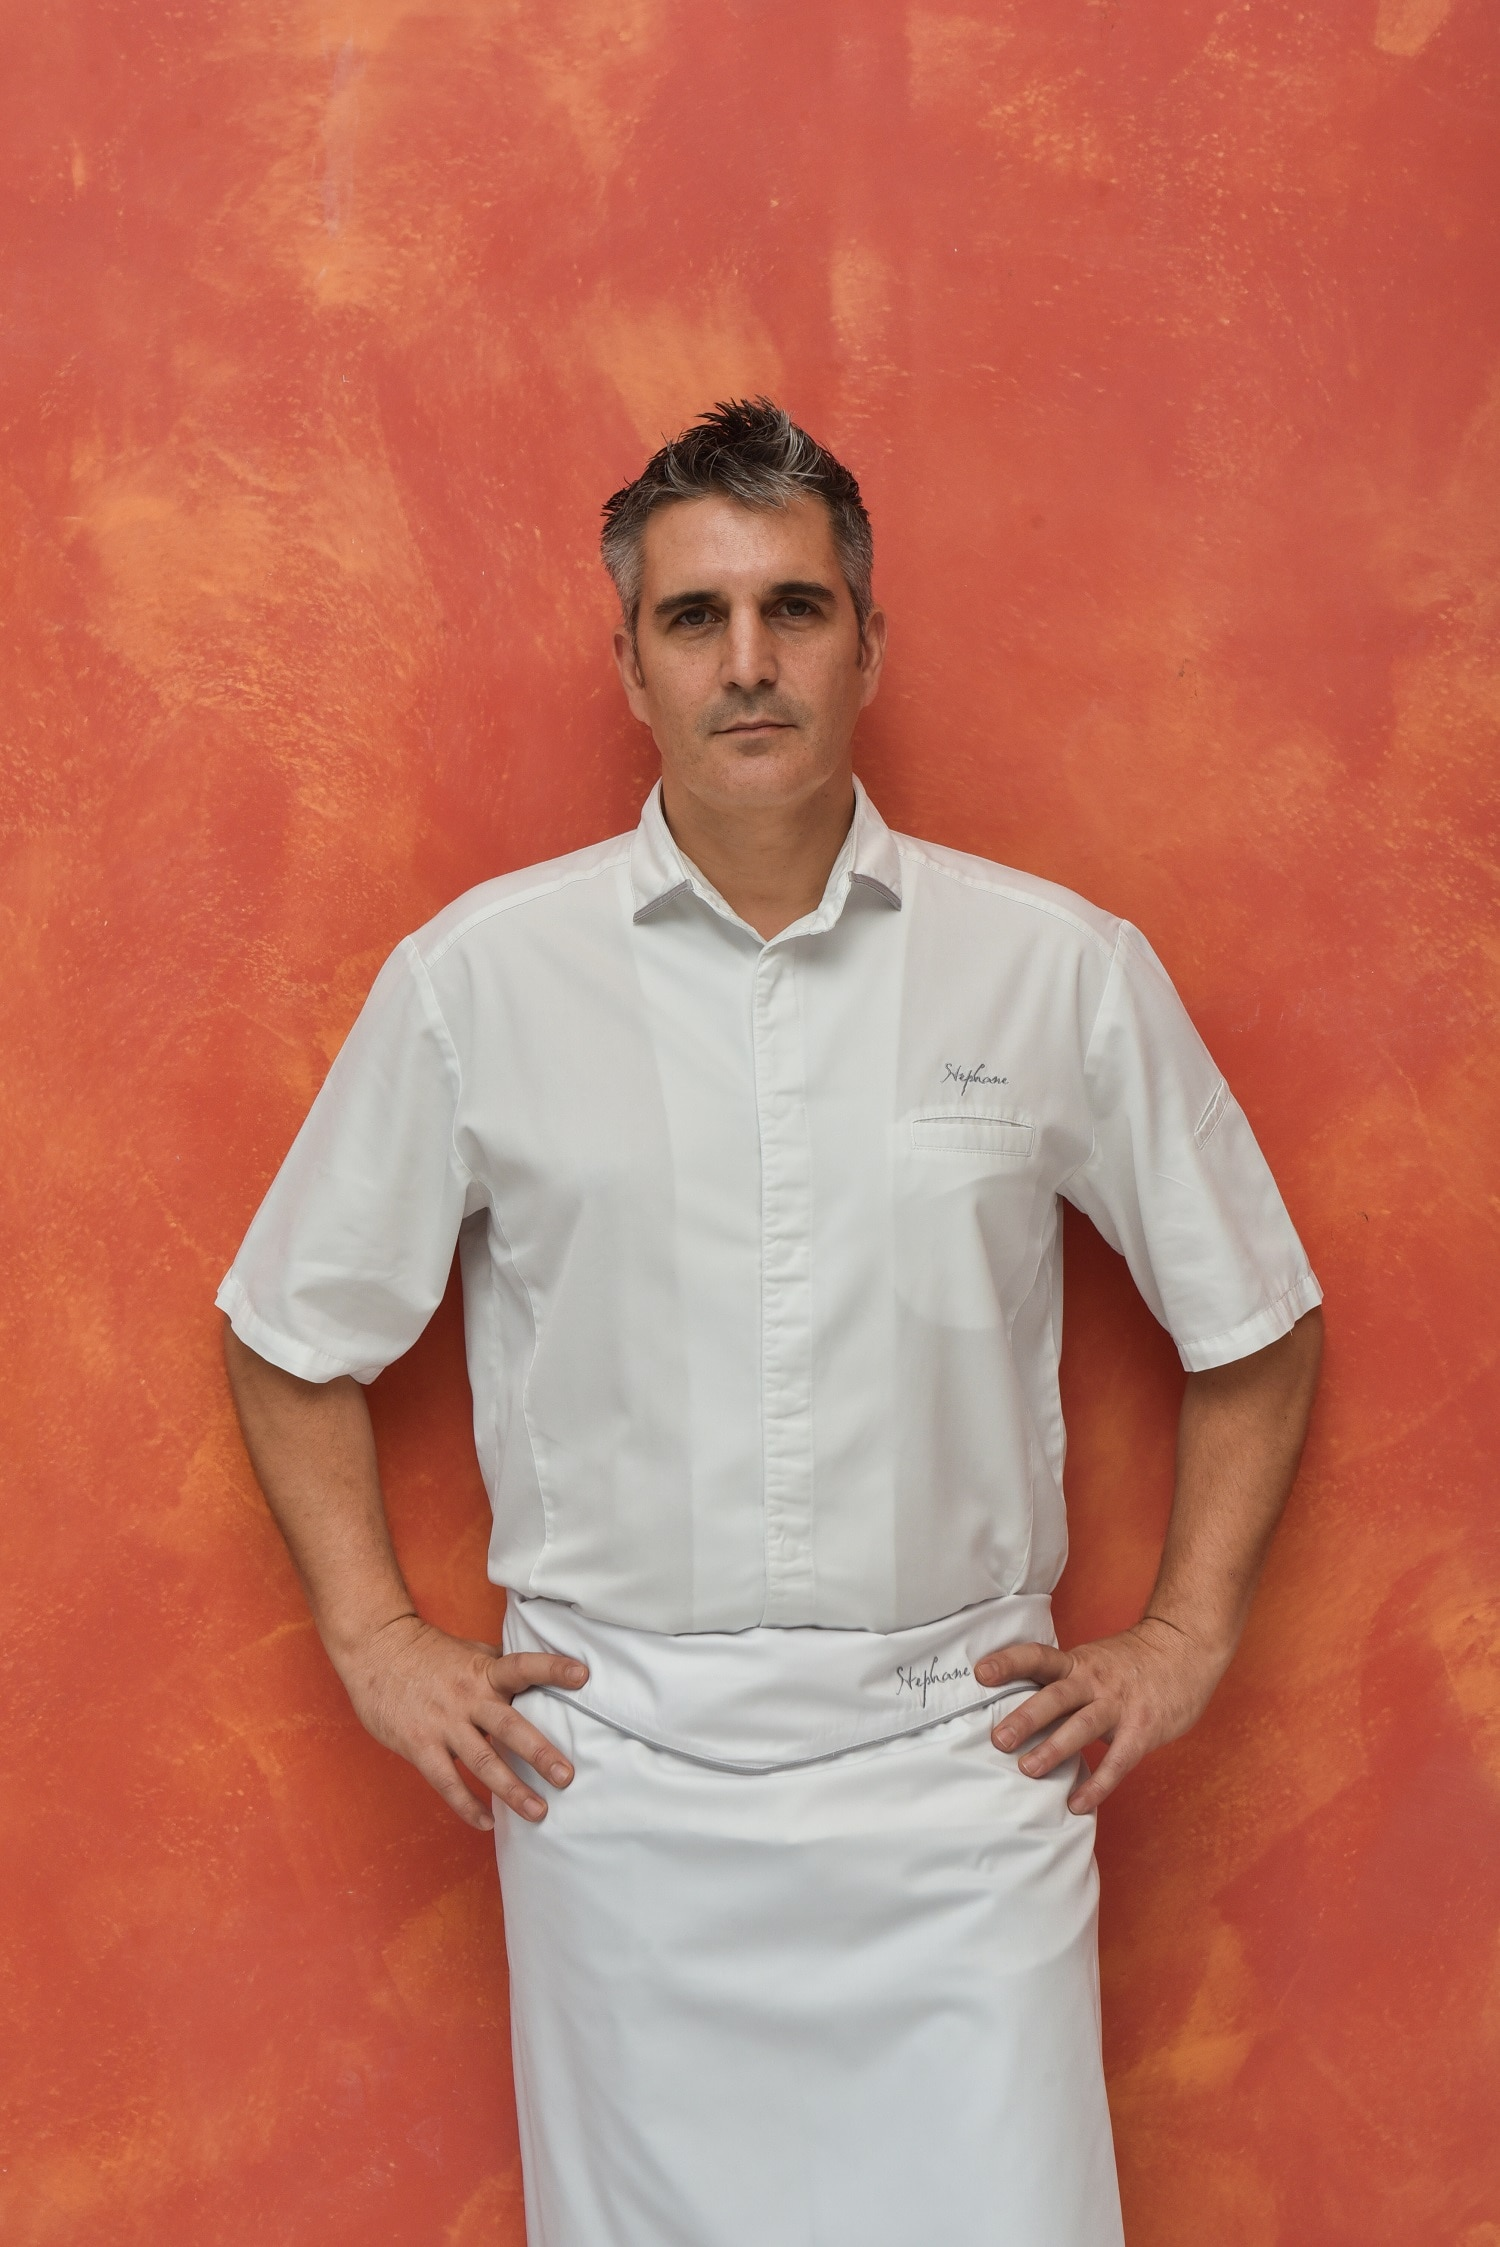 Chef Stephane Calvet